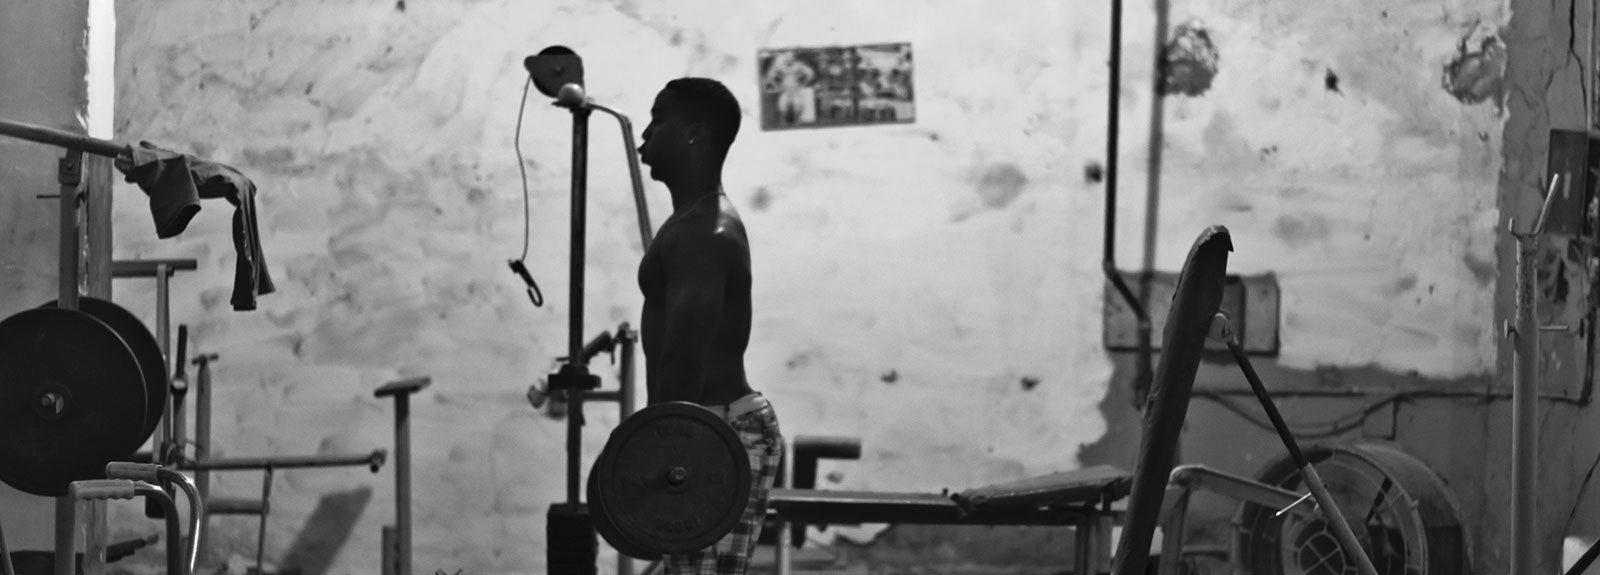 Man doing weights on a gym